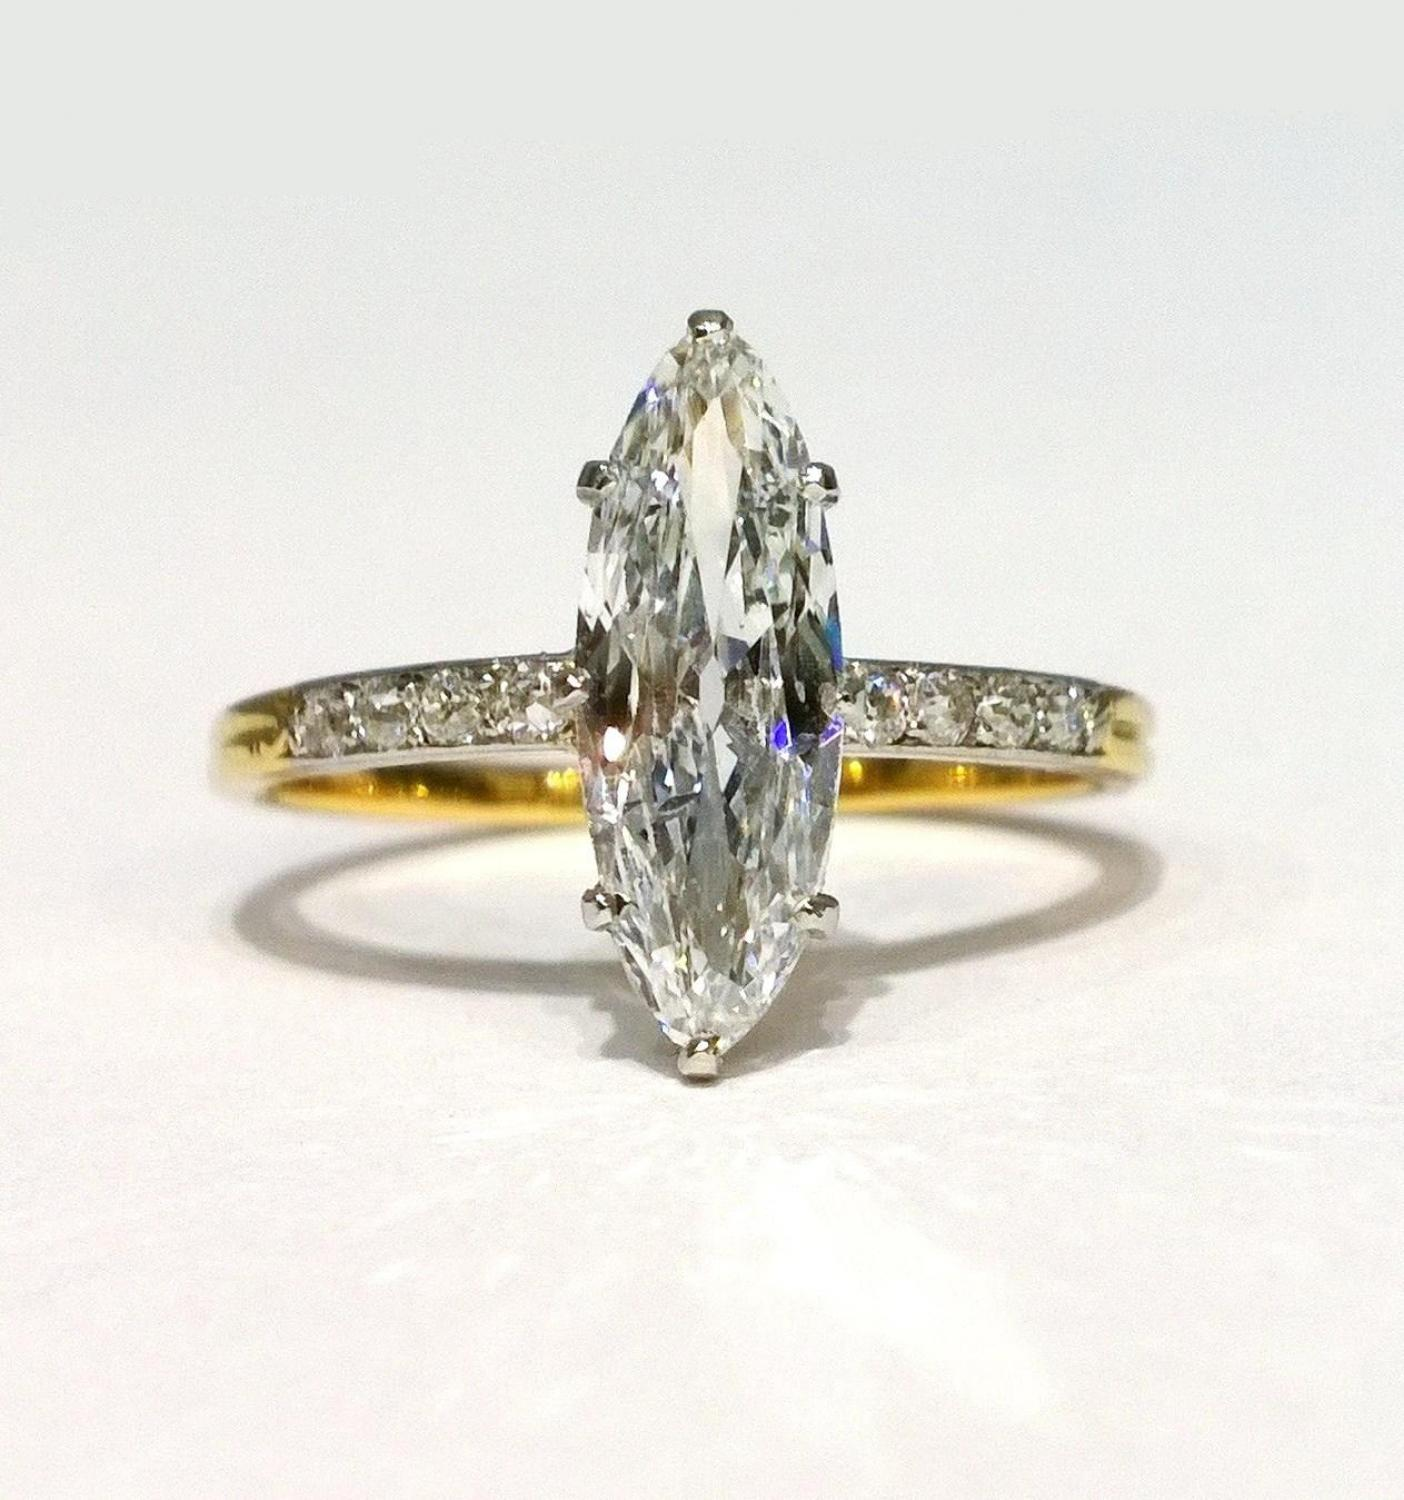 Antique marquise cut diamond